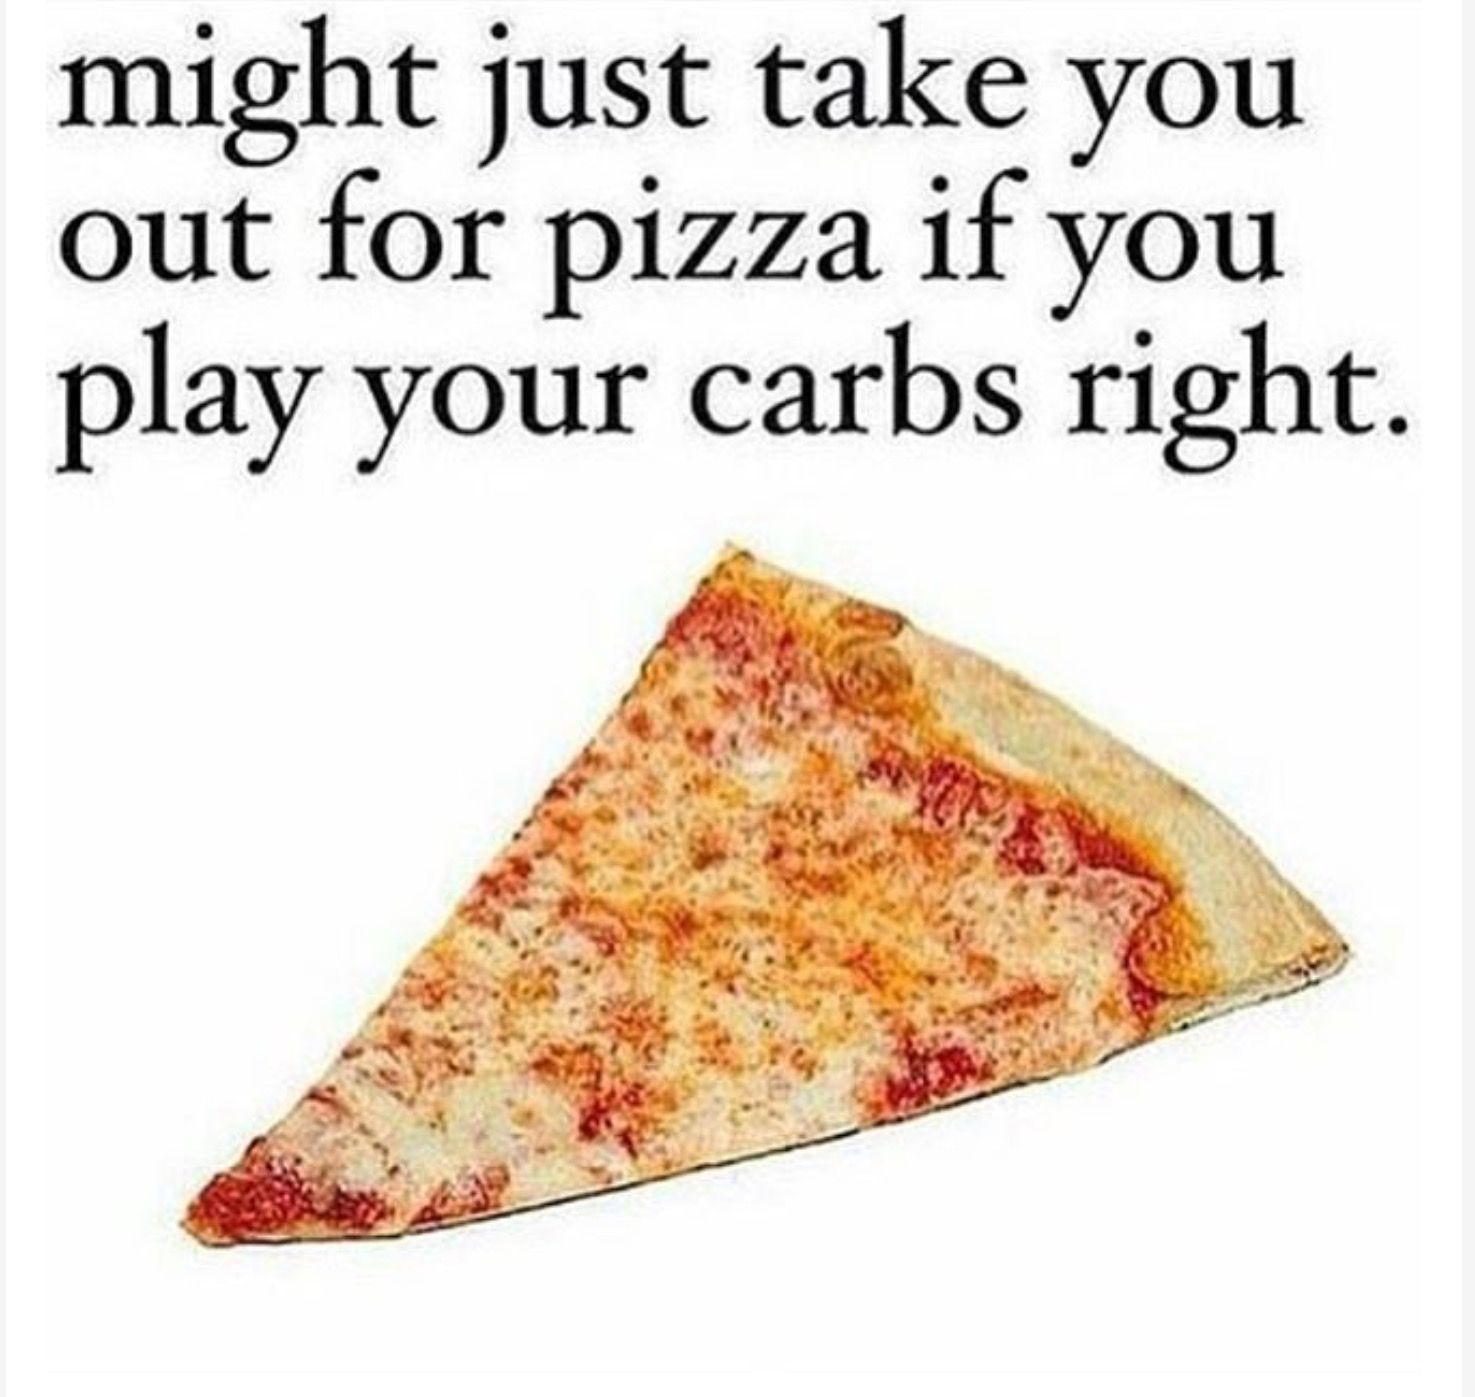 Play your carbs right *wink* #punny